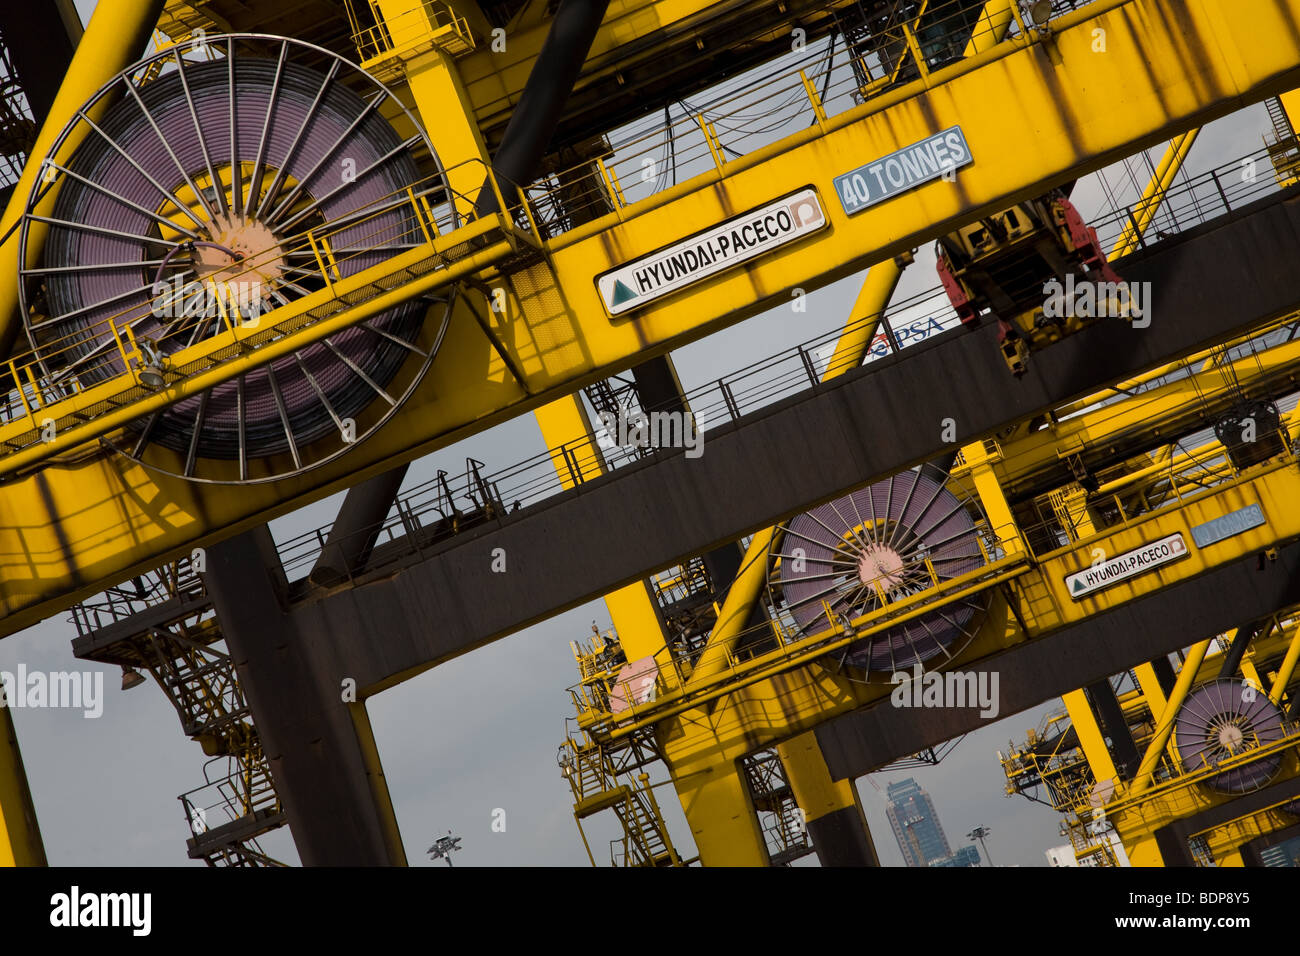 Container port crane spool cable cabling cranes - Stock Image